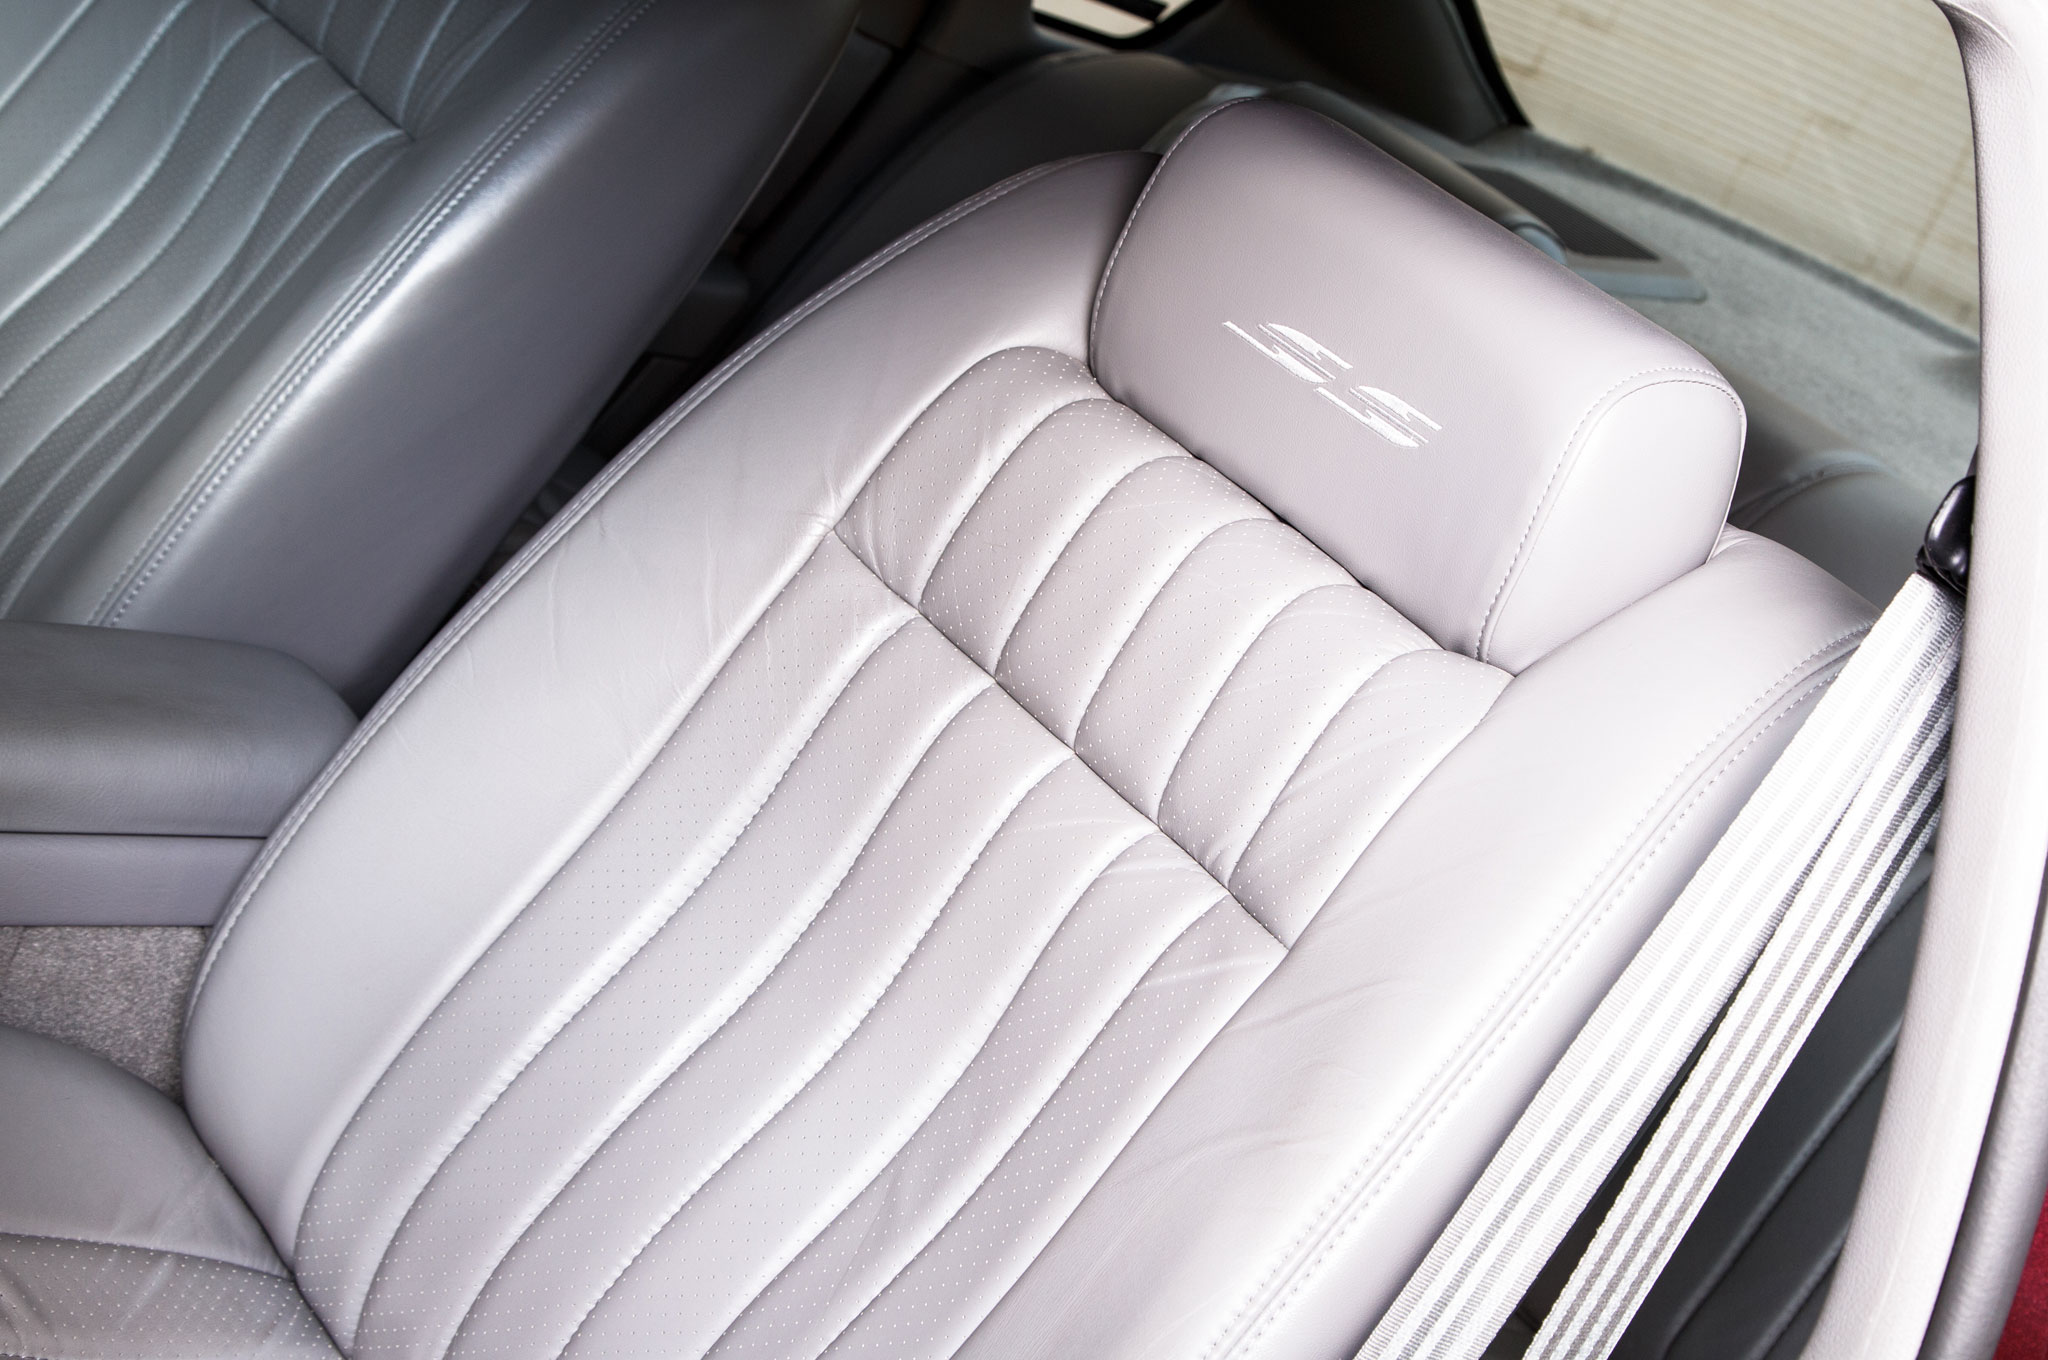 1996 Impala Ss Seat Covers Velcromag